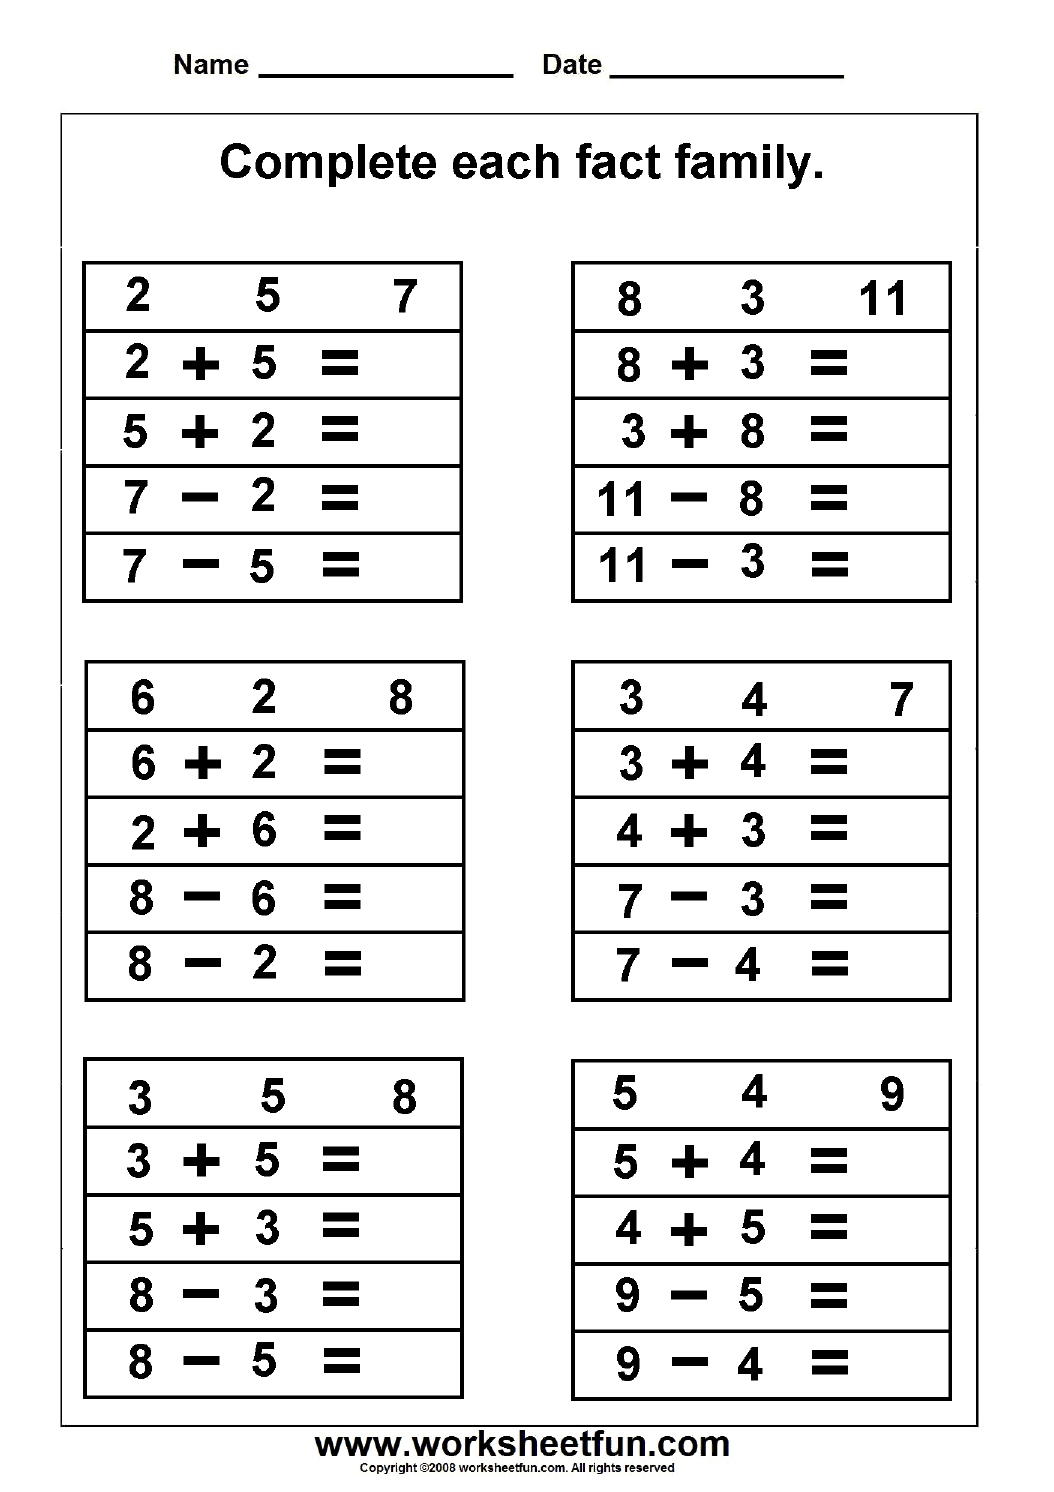 Two Digit Divisor Worksheet Fun